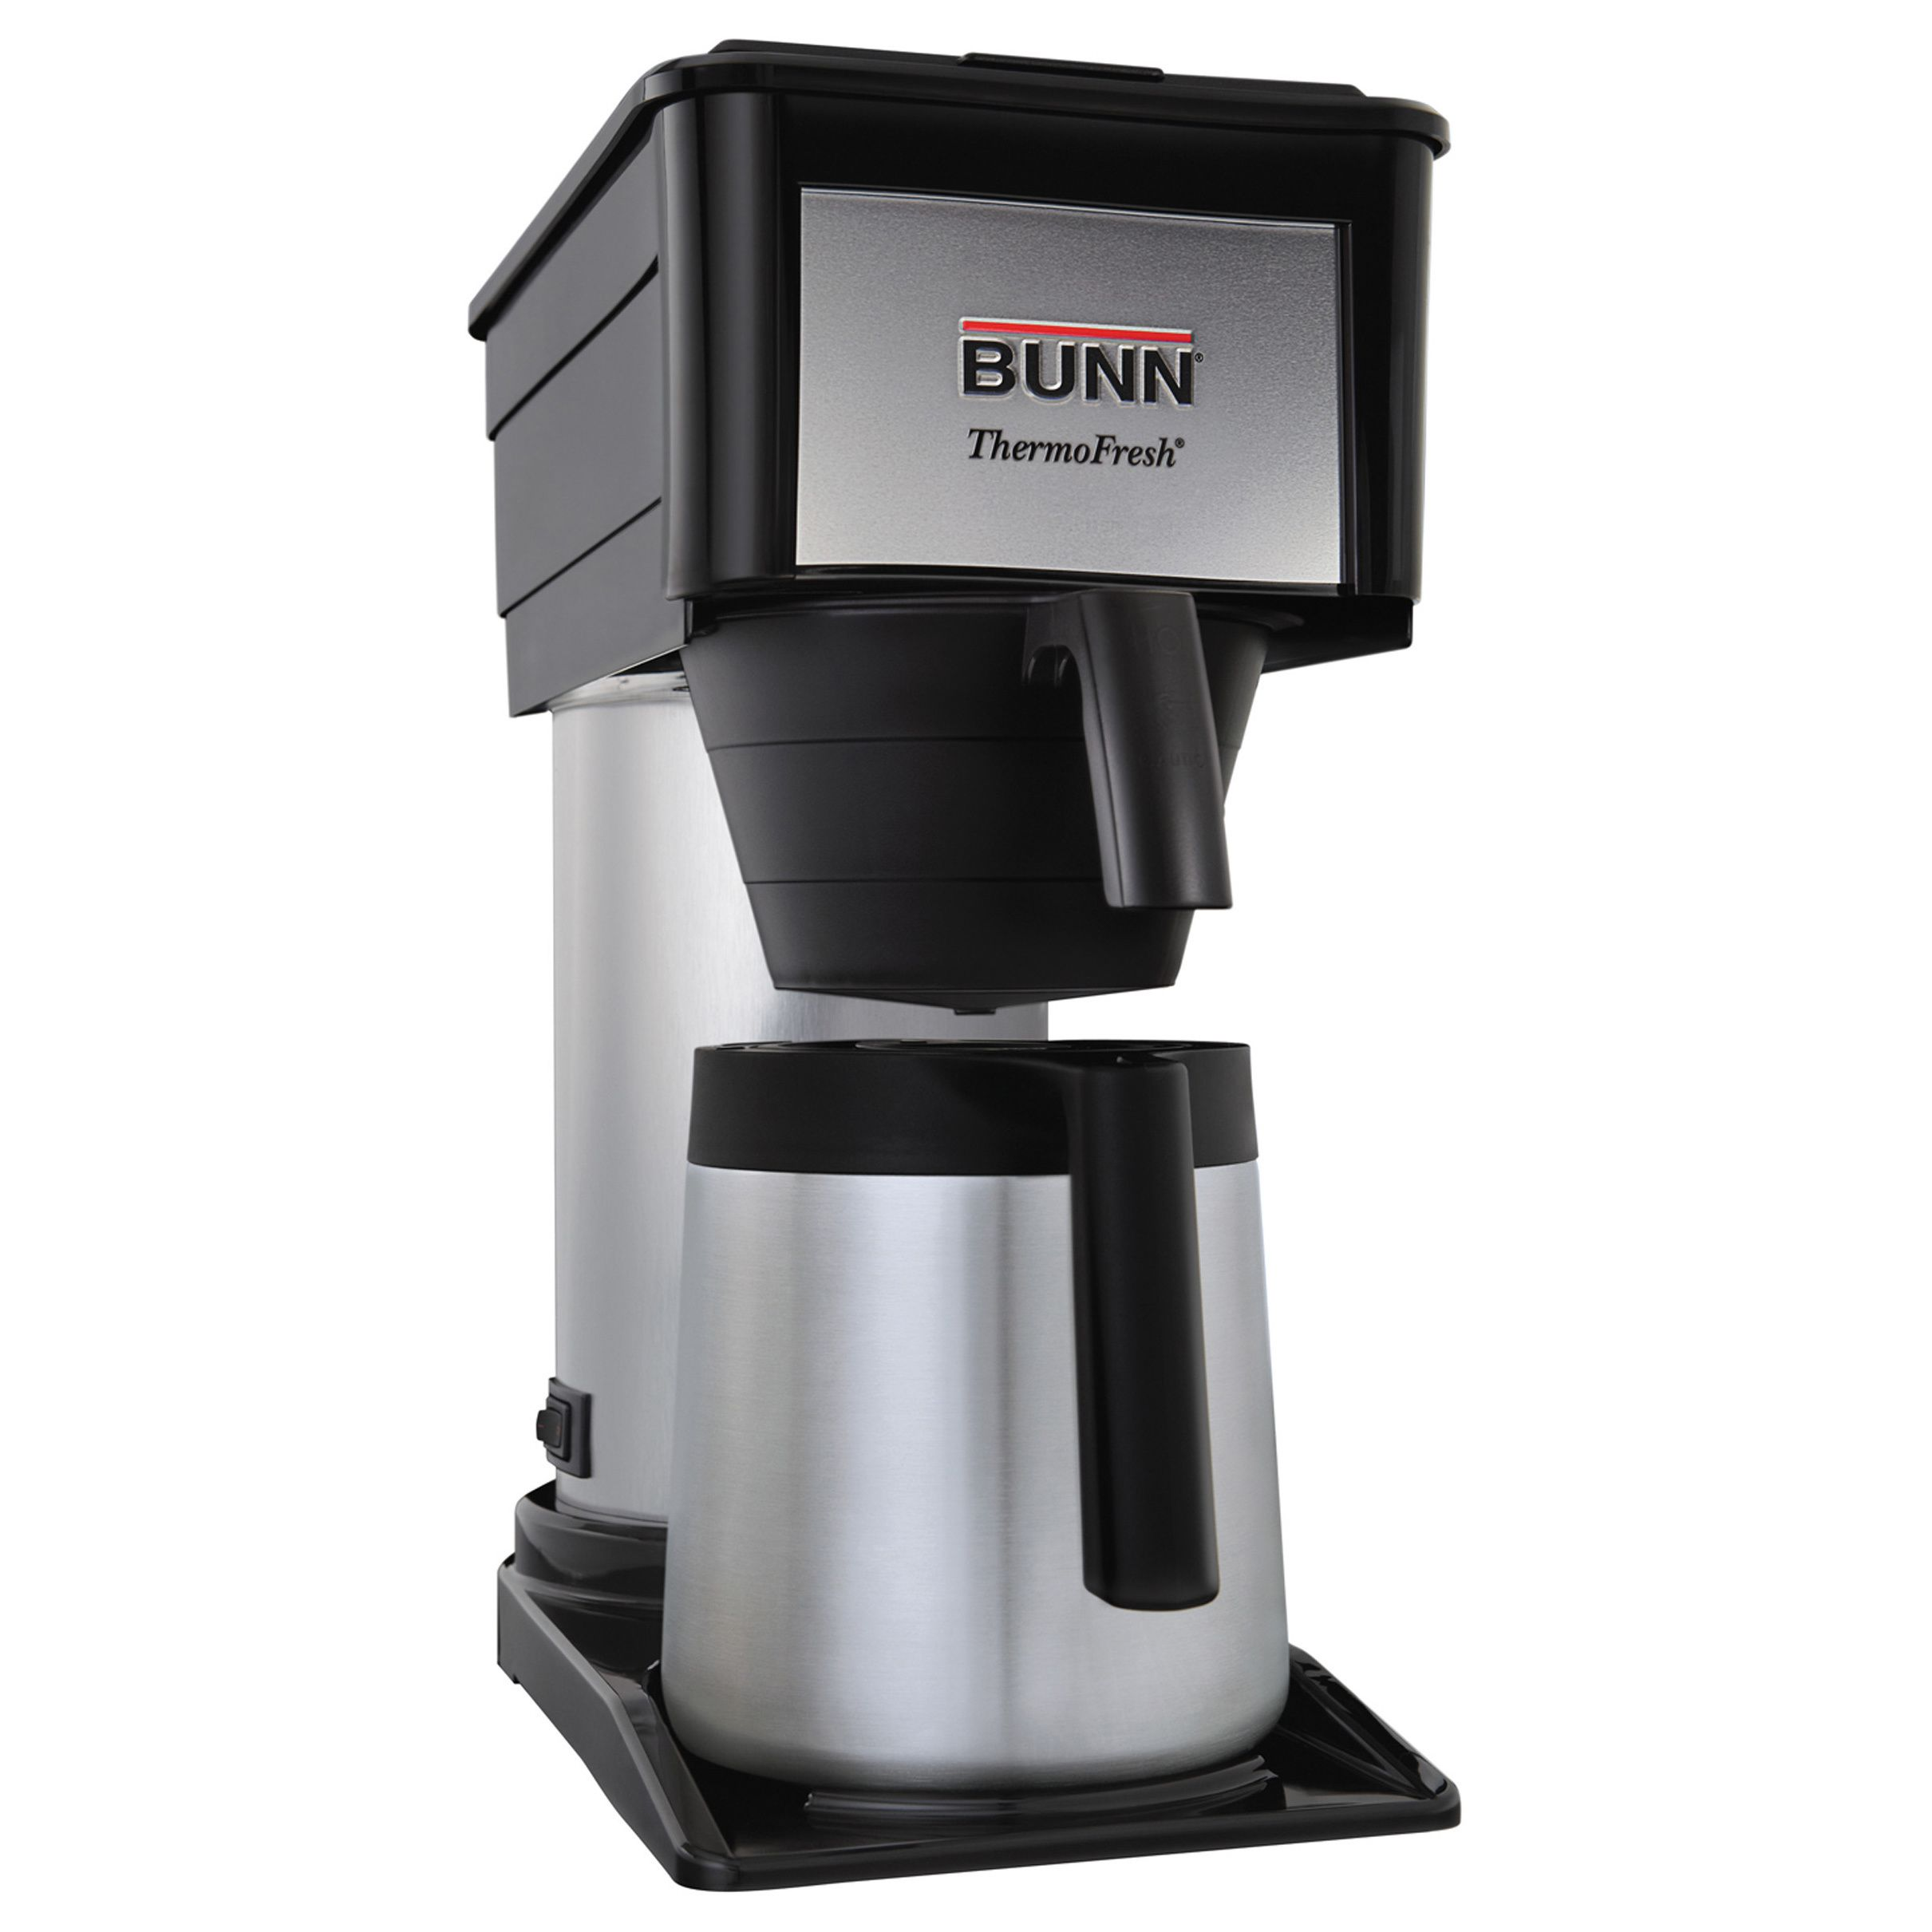 Online Shopping Bedding Furniture Electronics Jewelry Clothing More Thermal Coffee Maker Best Coffee Maker Bunn Coffee Maker